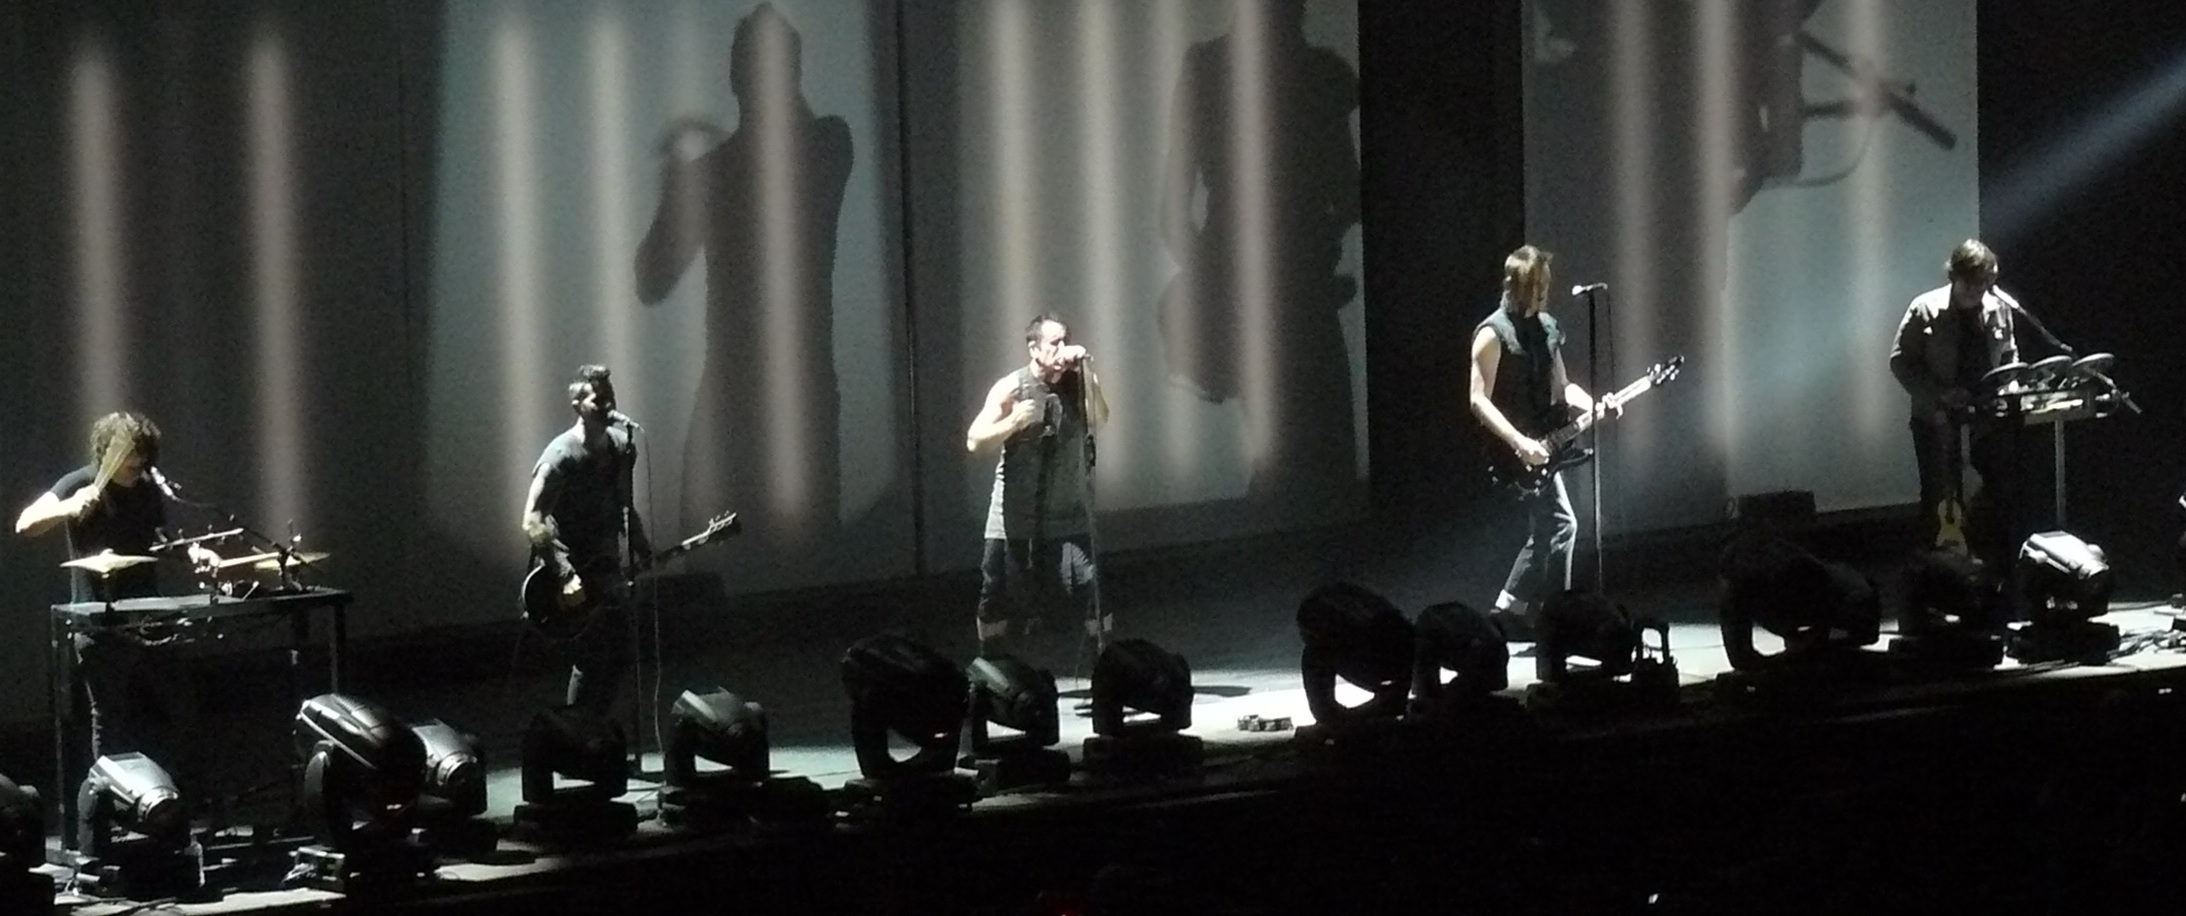 File:Nine Inch Nails, live at Mediolanum Forum, Milan in 2013.jpg ...